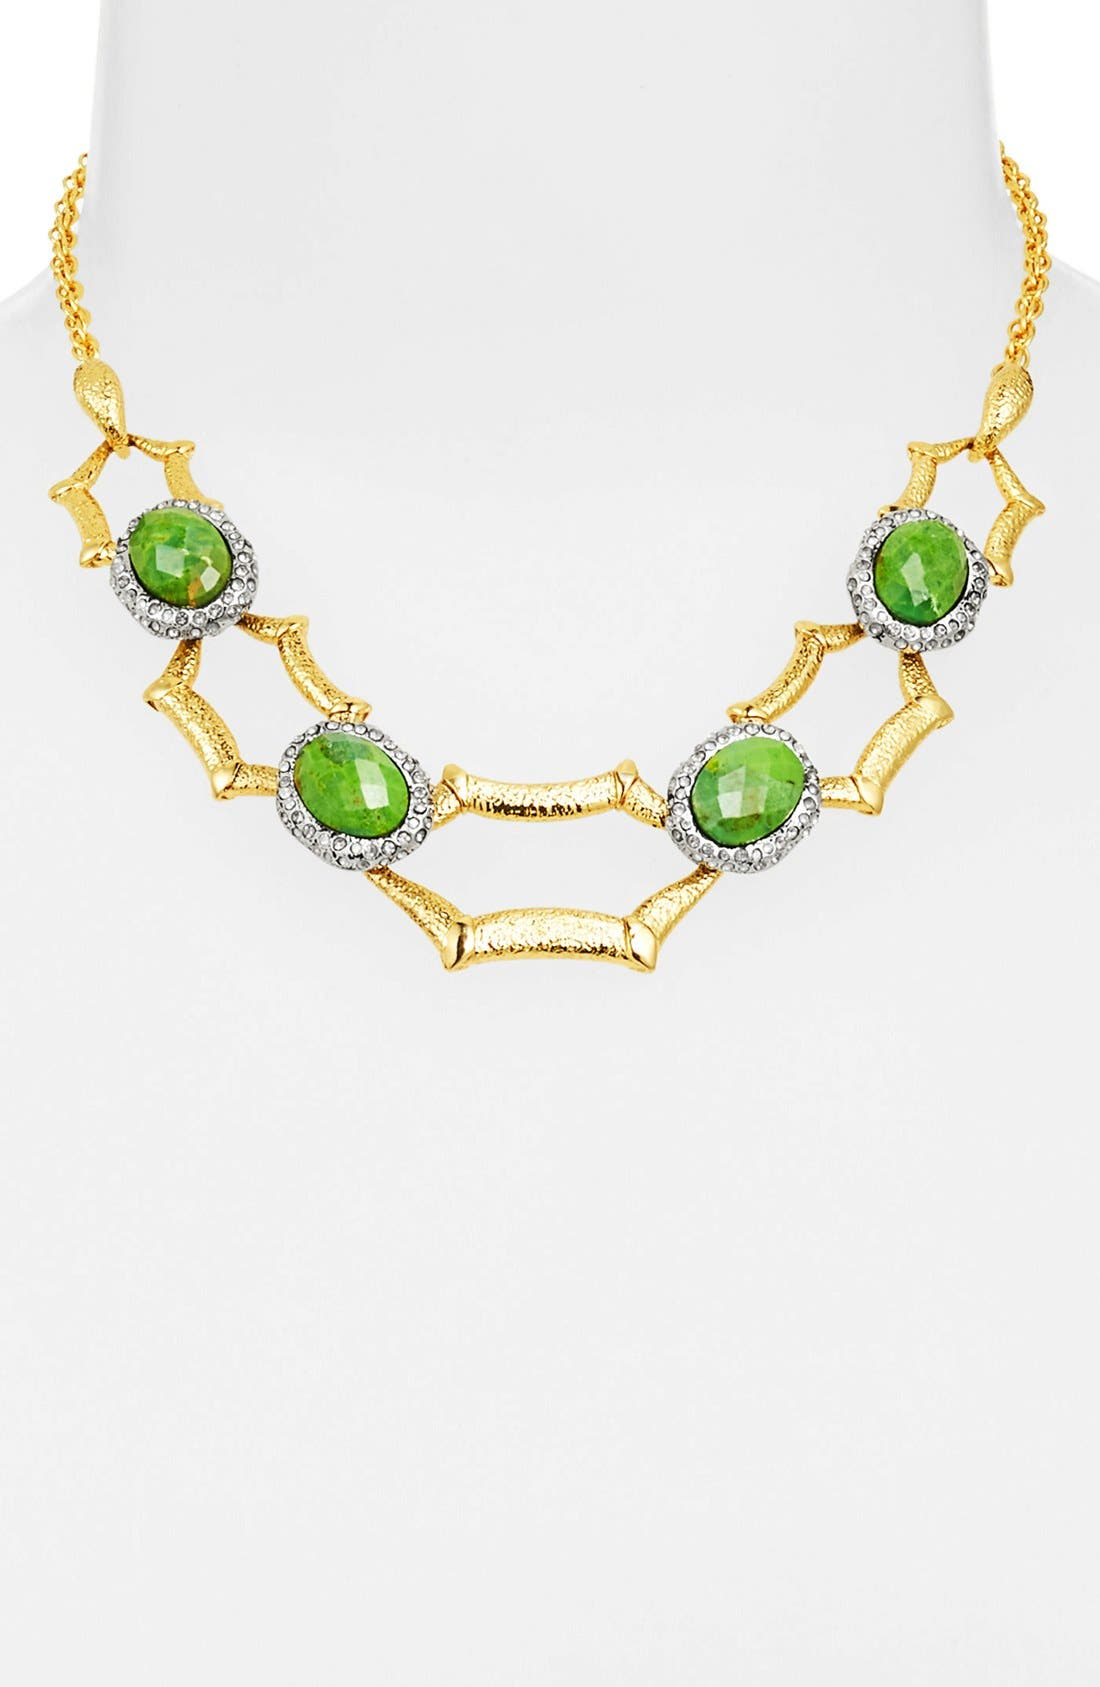 Main Image - Alexis Bittar 'Elements - Cholulian' Frontal Necklace